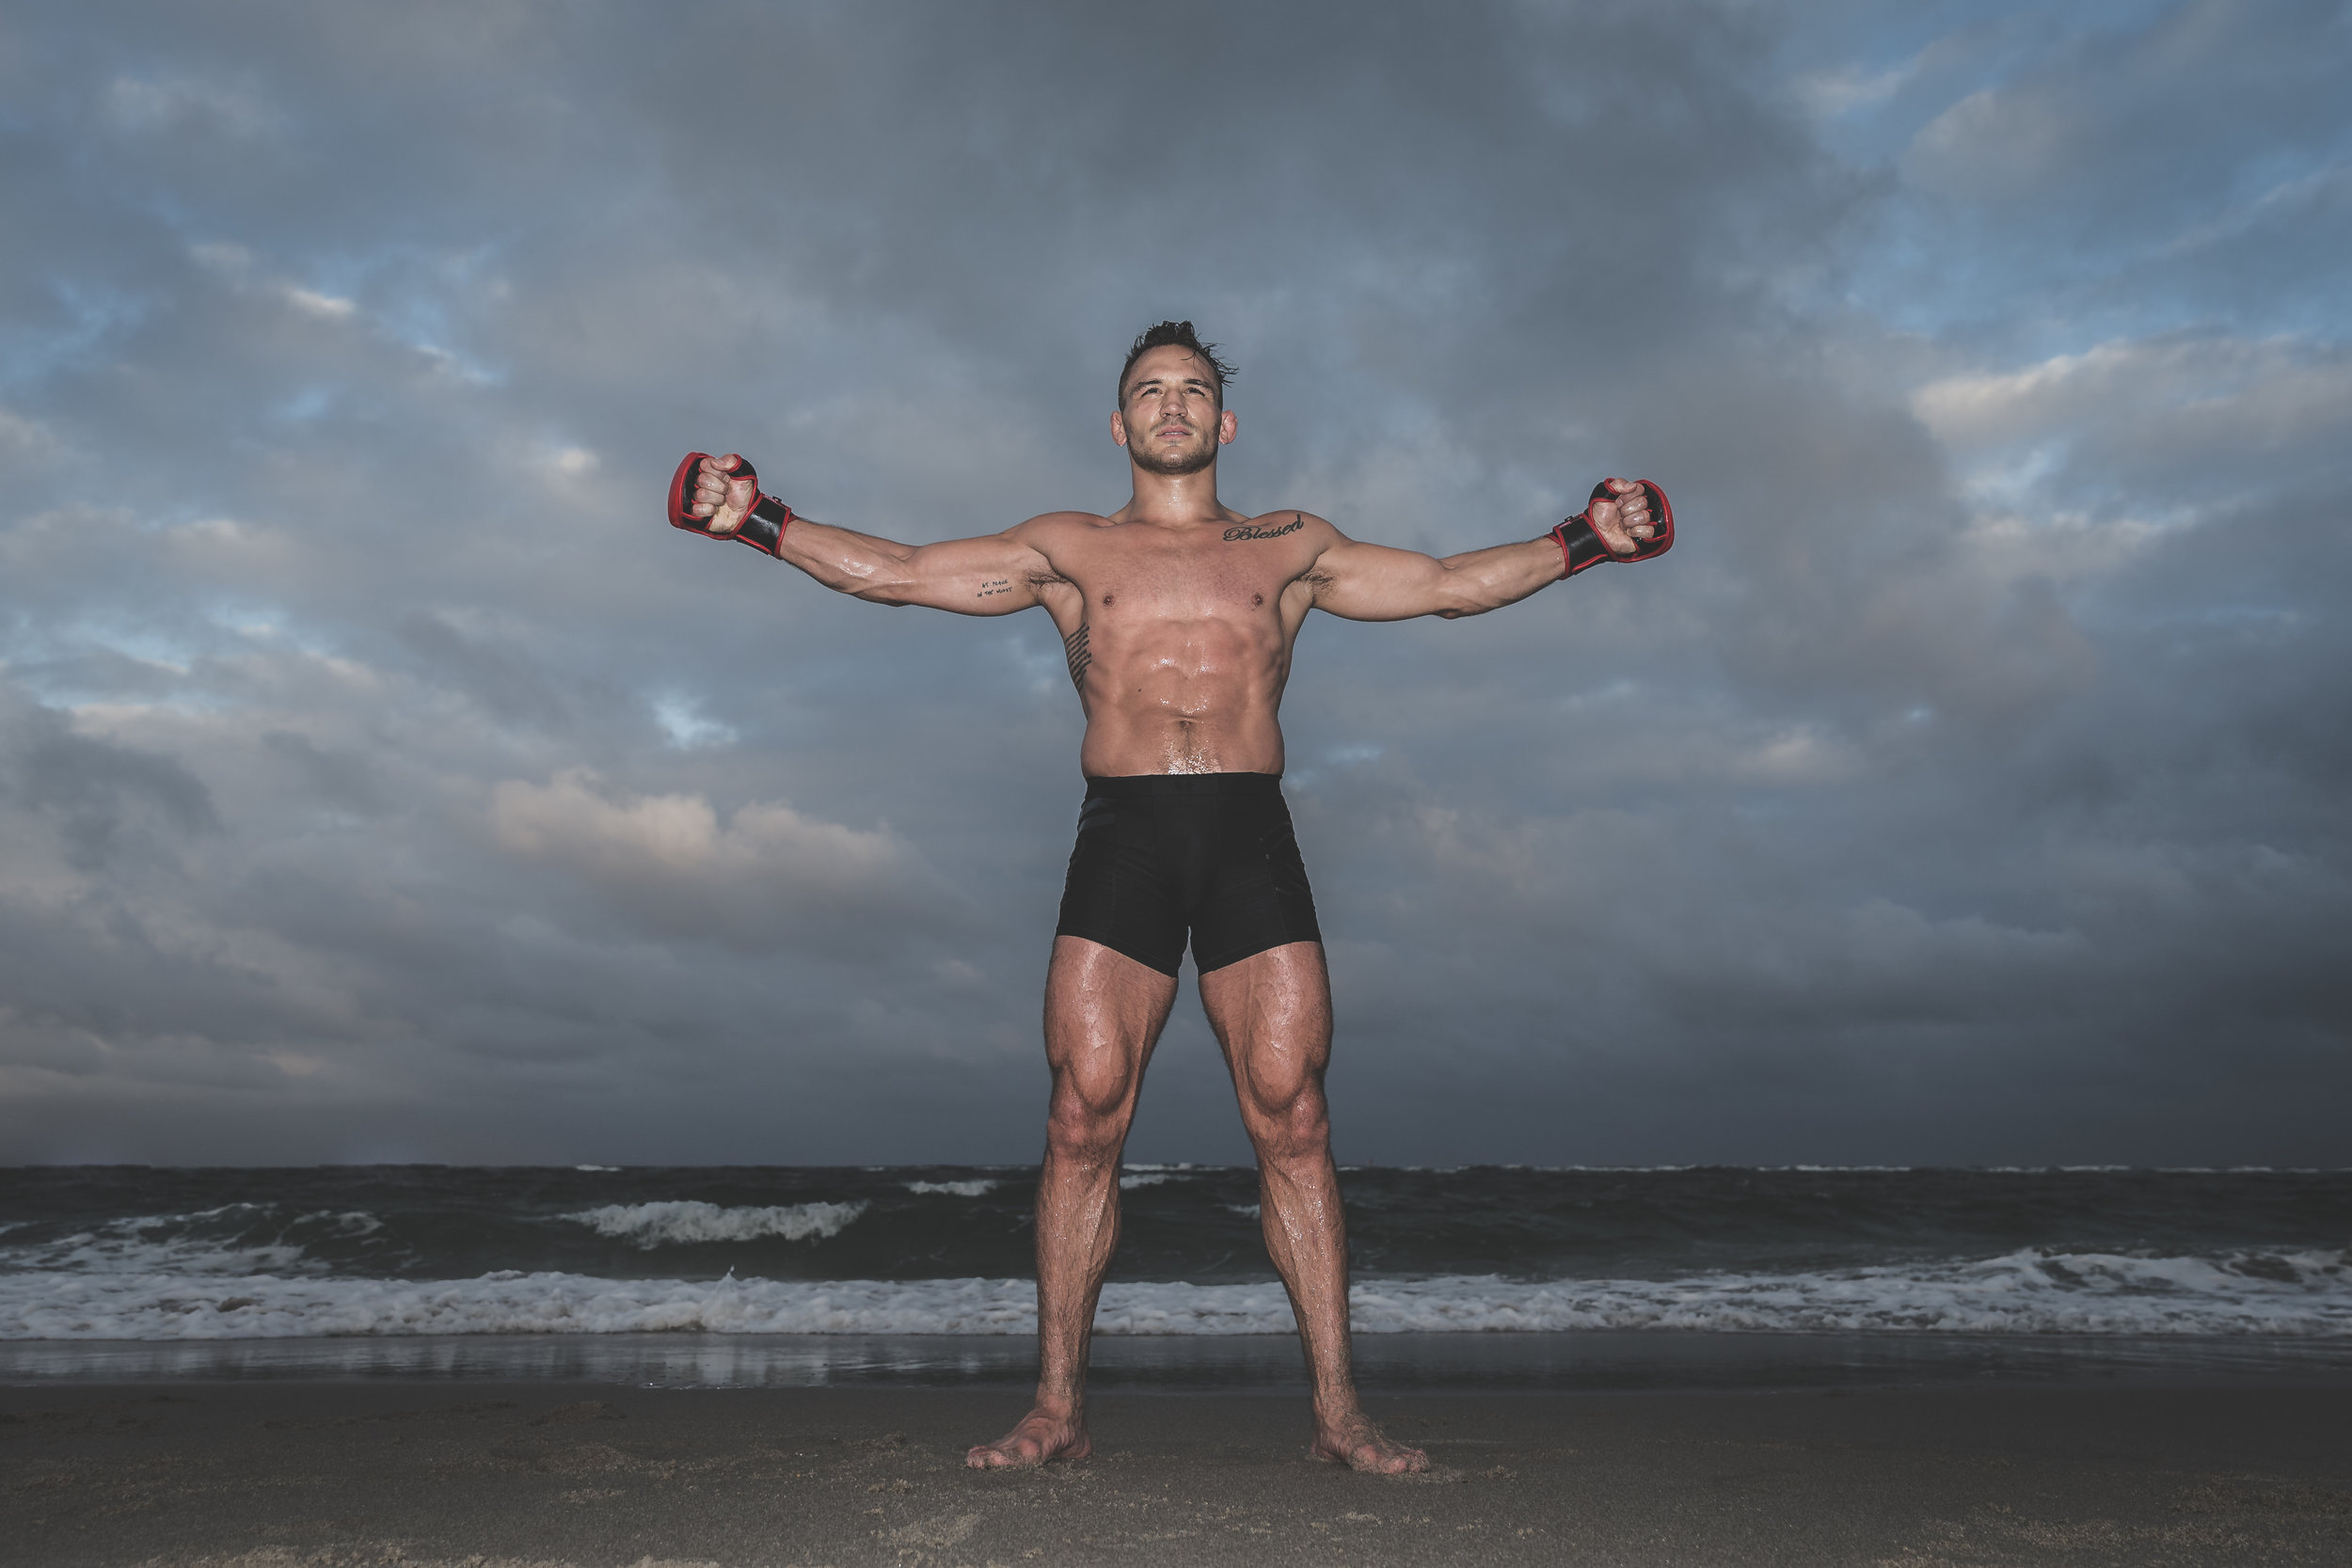 Bellator's Michael Chandler stands on the coast of Florida, post beach workout session with Henri Hooft.